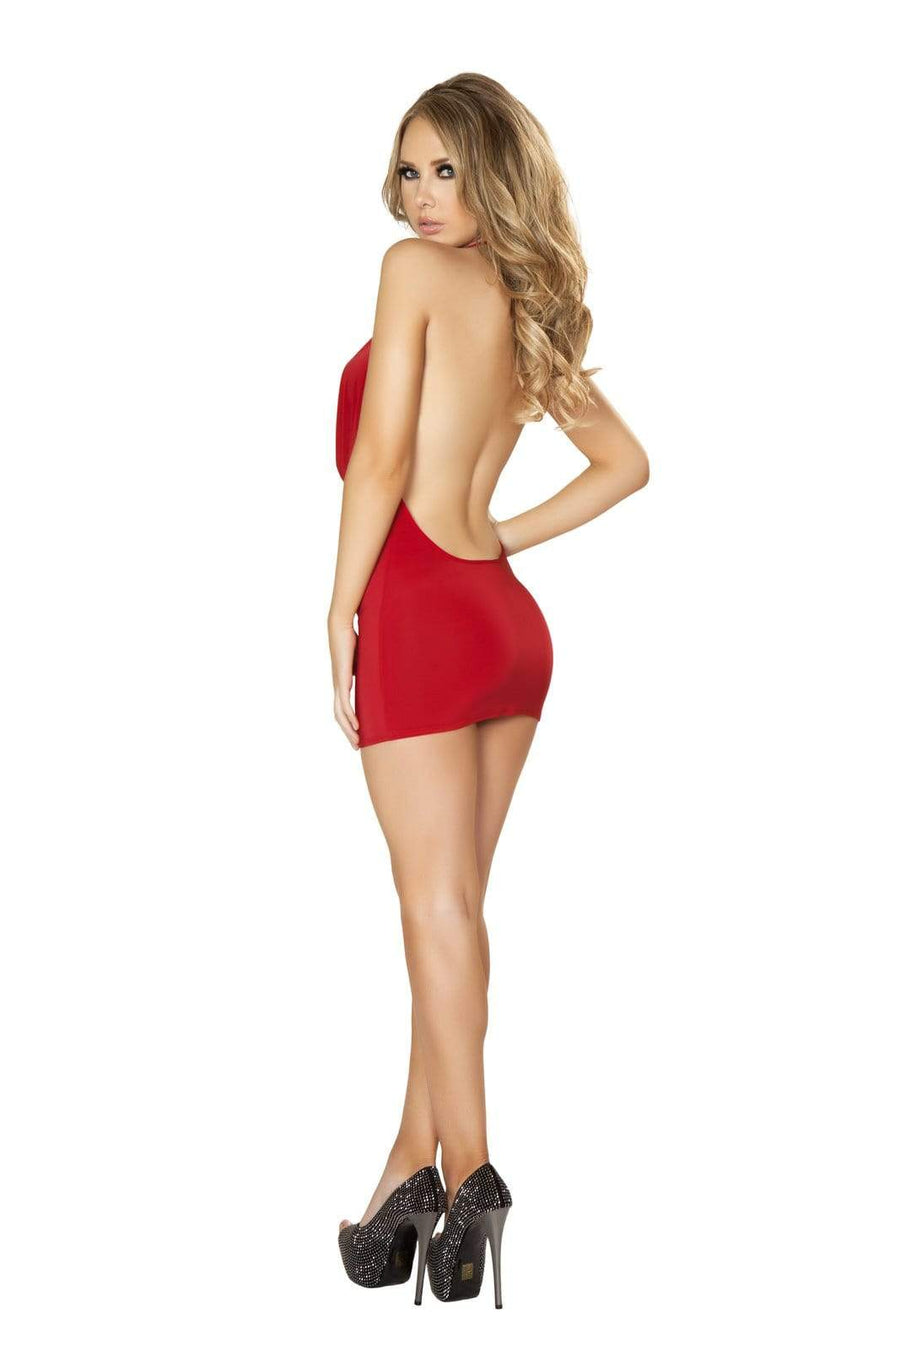 Roma S/M / Red Red O-Ring Plunge Cowl Neck Open Back Cocktail Party Mini Dress (Many colors available) SHC-3131-RED-S/M-R Sexy Red O-Ring Plunge Cowl Neck Cocktail Party Mini Dress Roma 3131 Apparel & Accessories > Clothing > Dresses